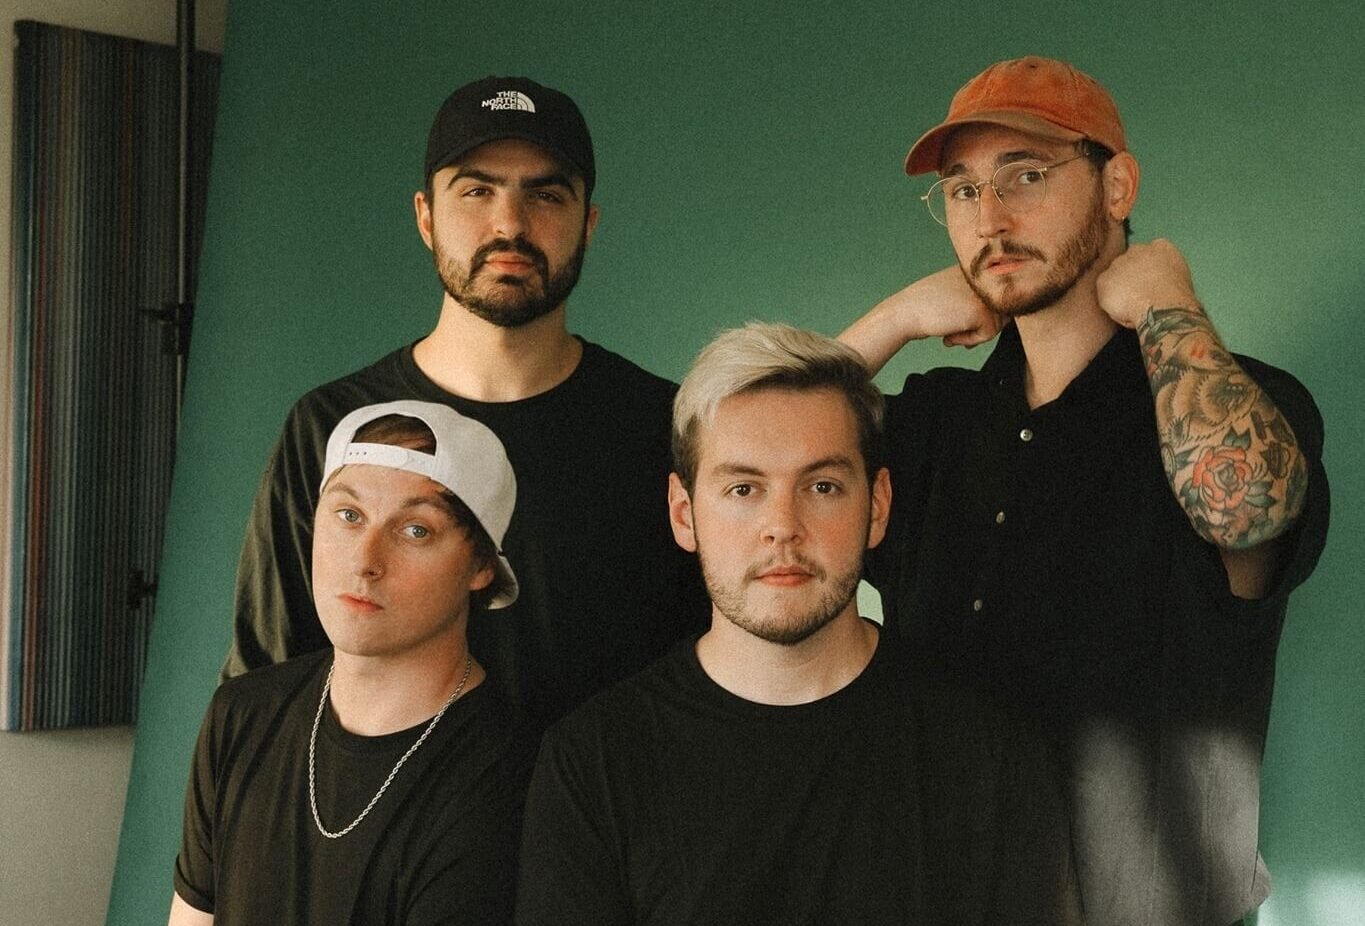 STATE CHAMPS TO HEADLINE 2021 'PURE NOISE TOUR'